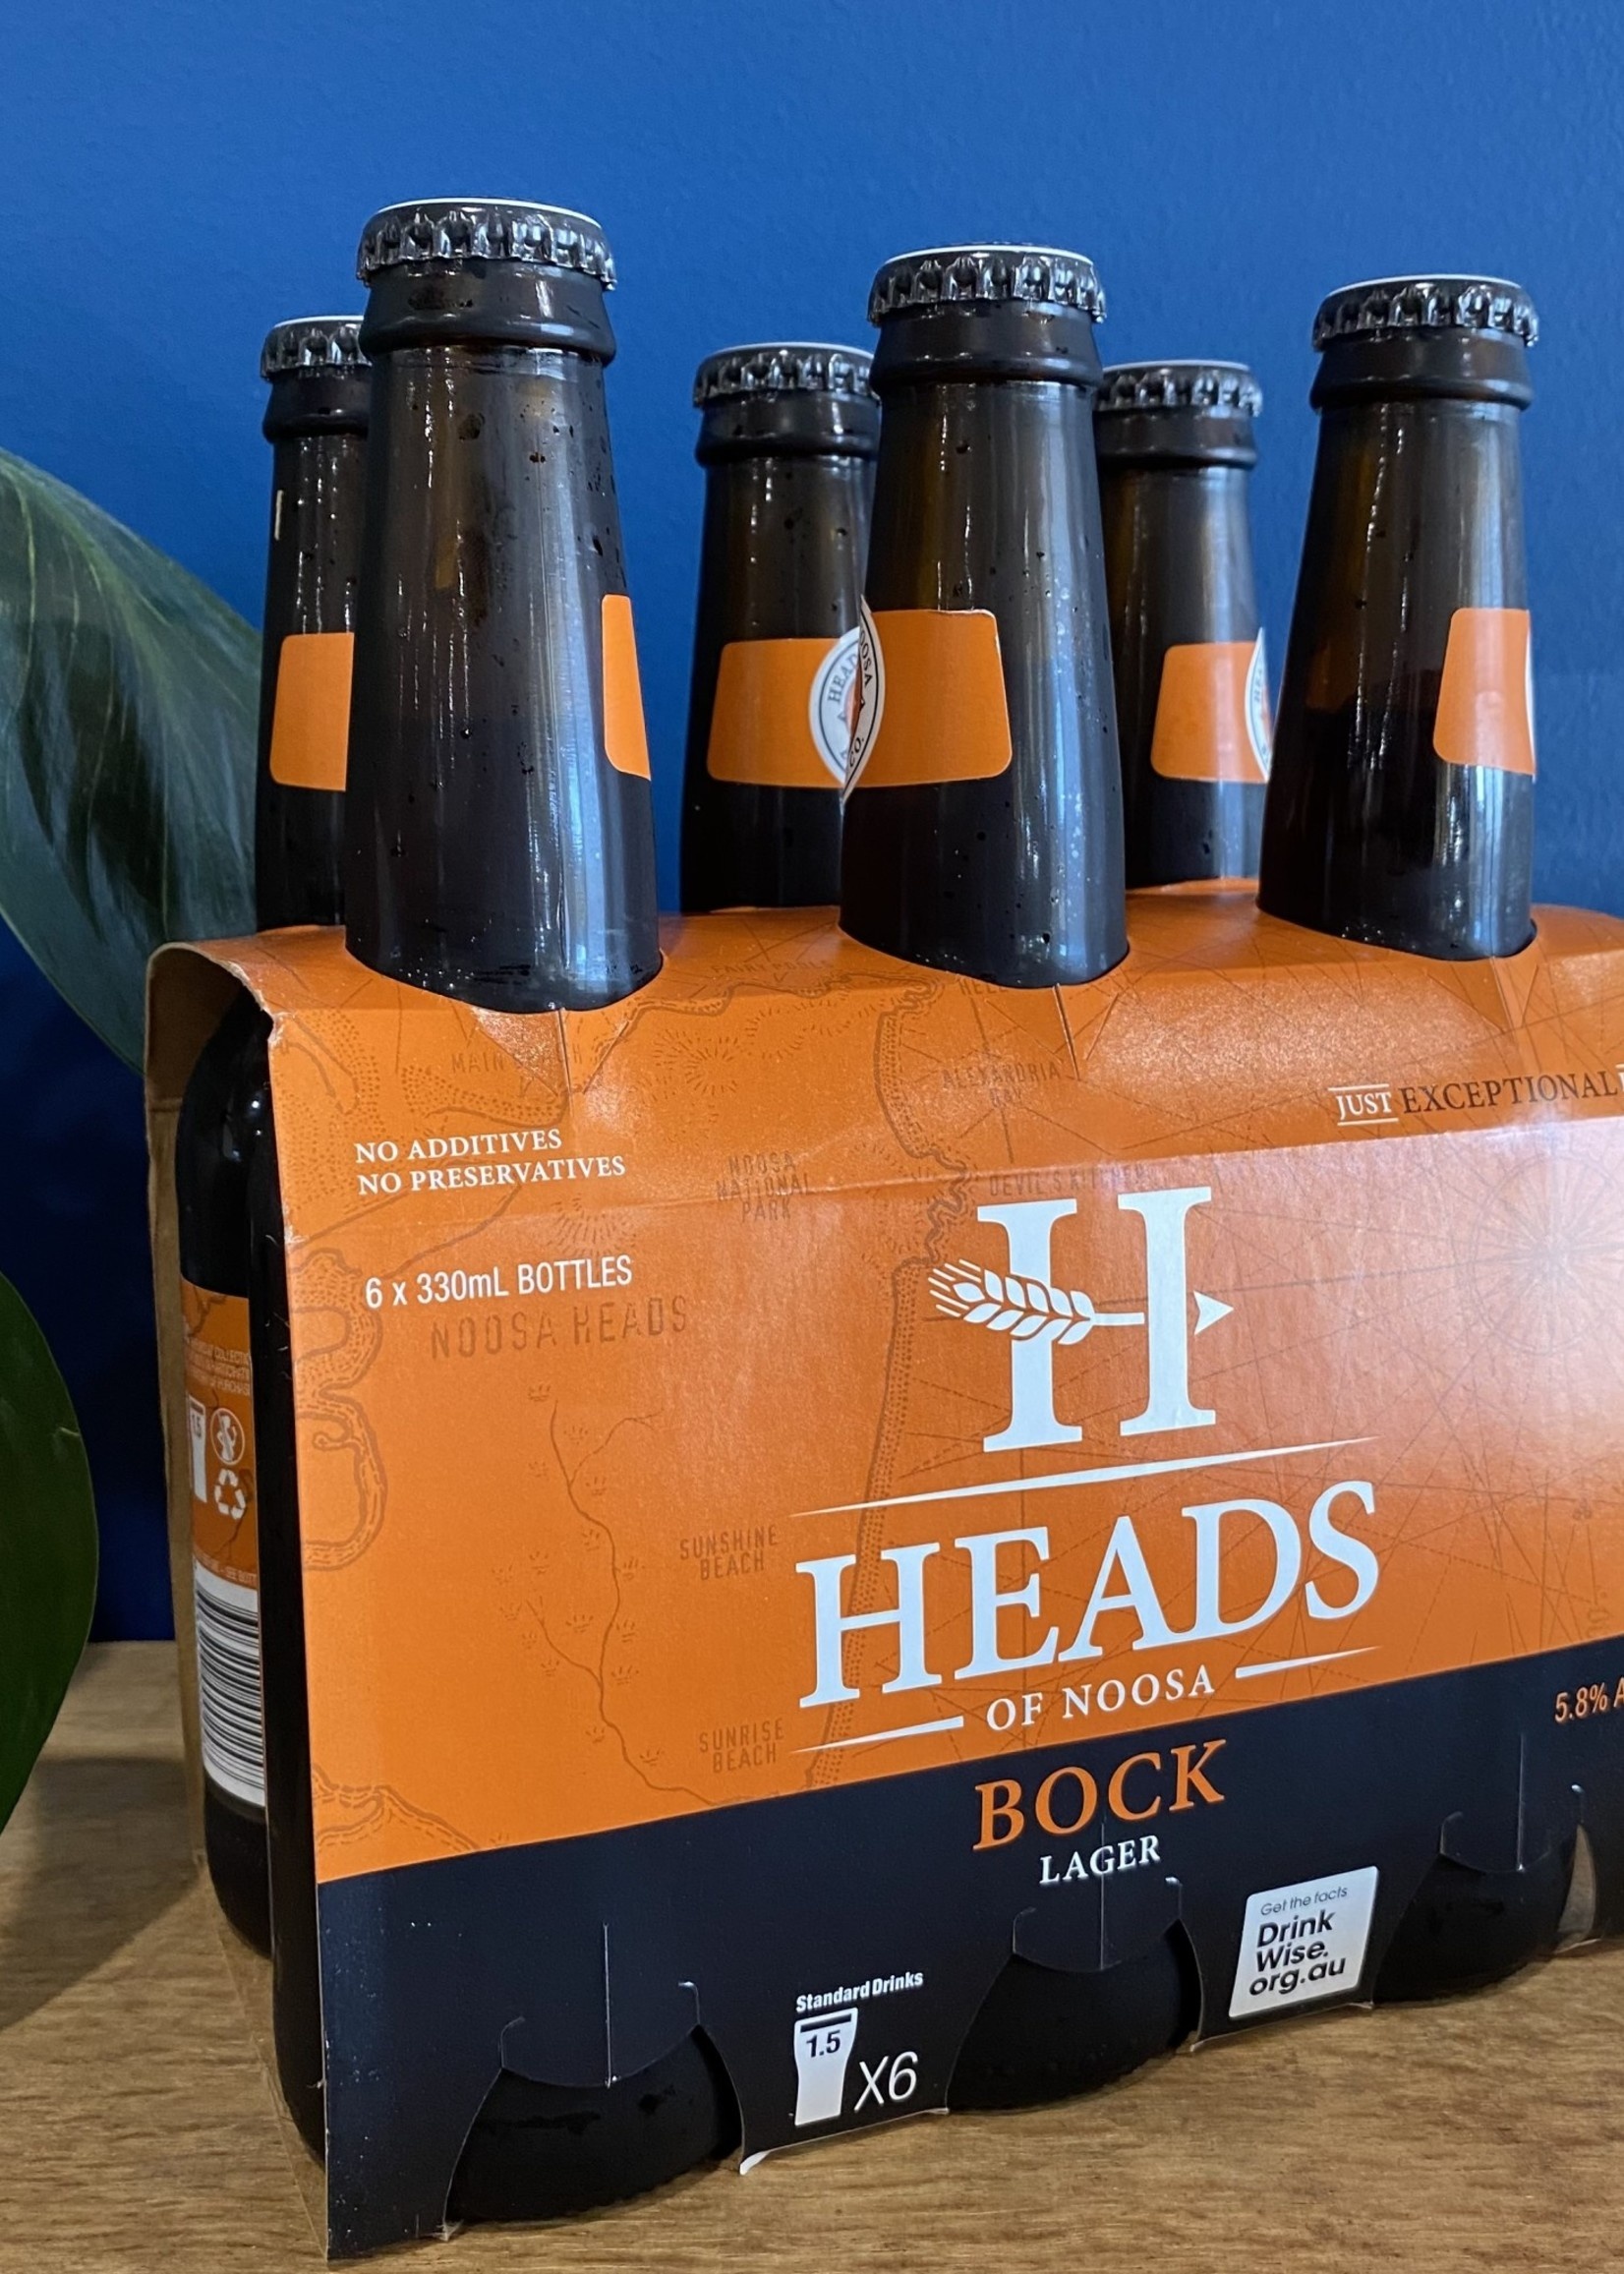 Heads Of Noosa Bock Lager